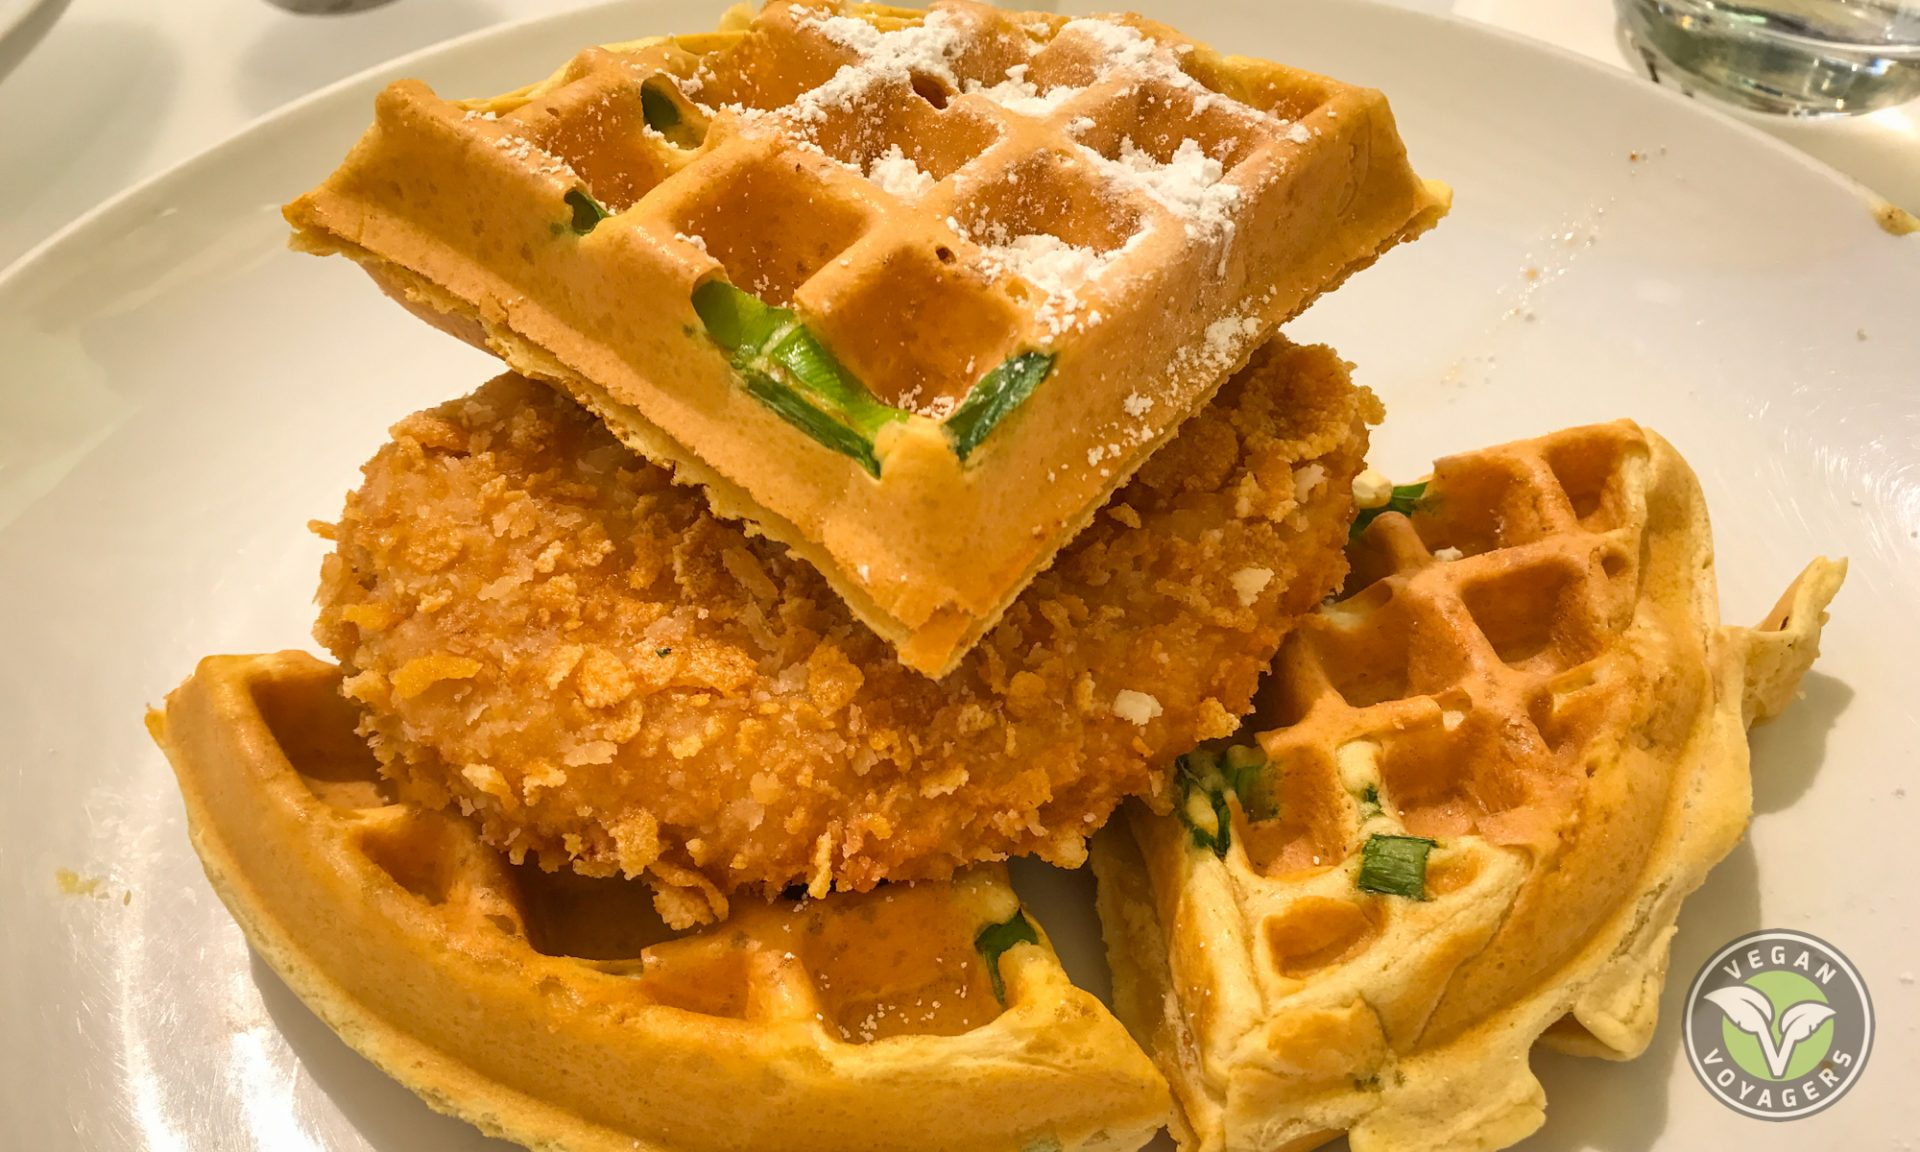 Vegan Chick'n and Waffles